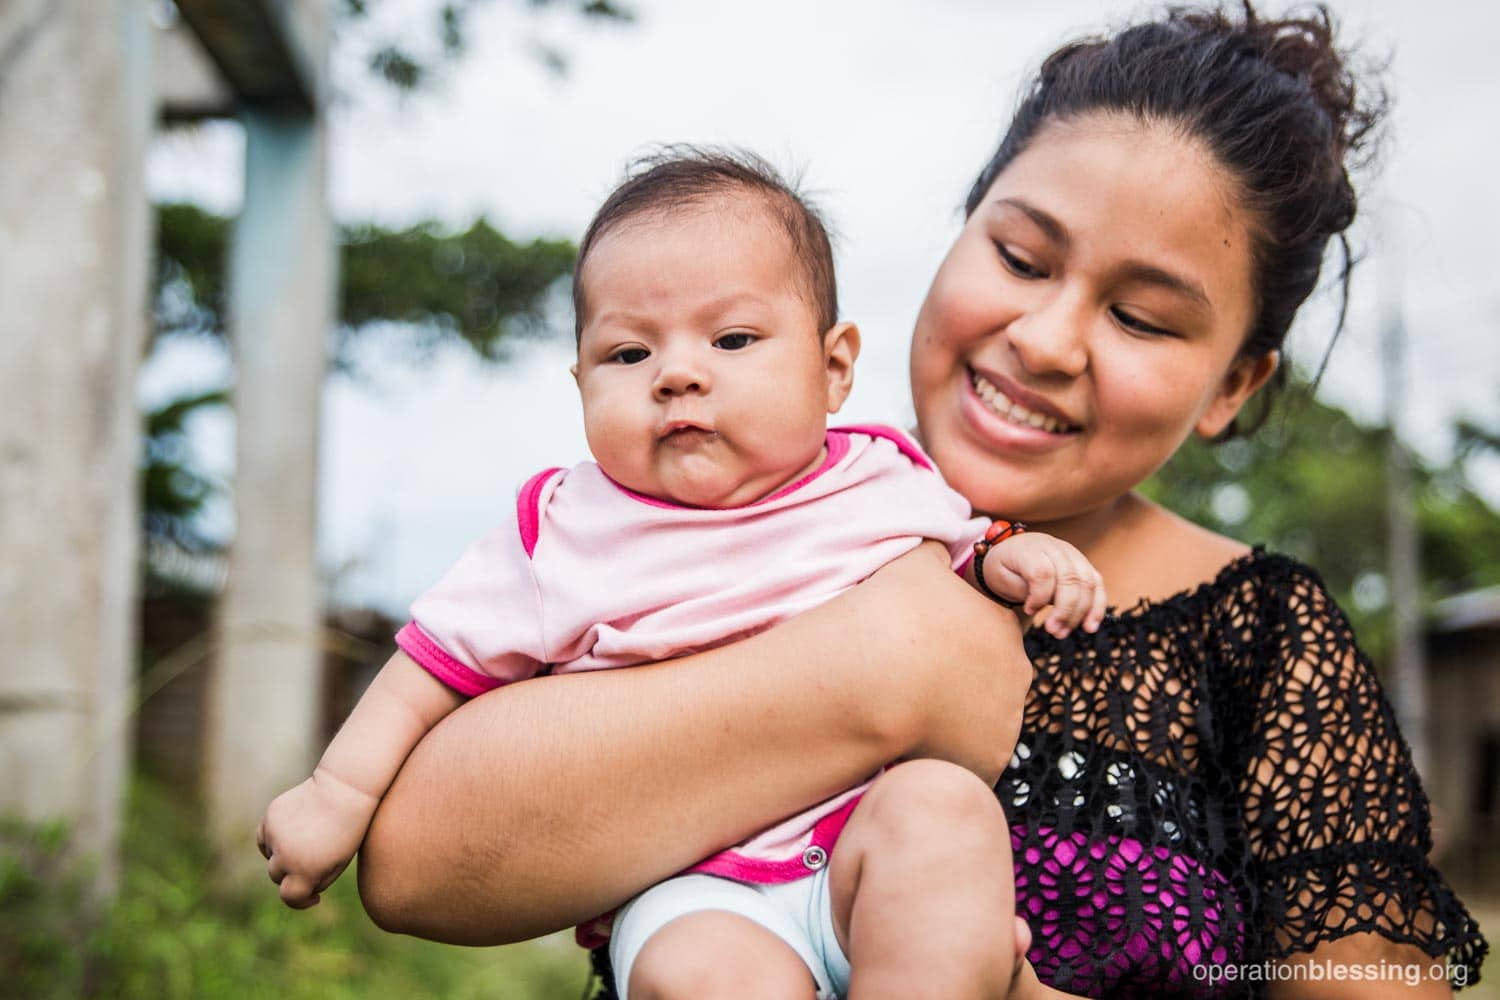 Asslin holding her healthy baby girl after both survived preeclampsia thanks to prenatal classes in Peru.